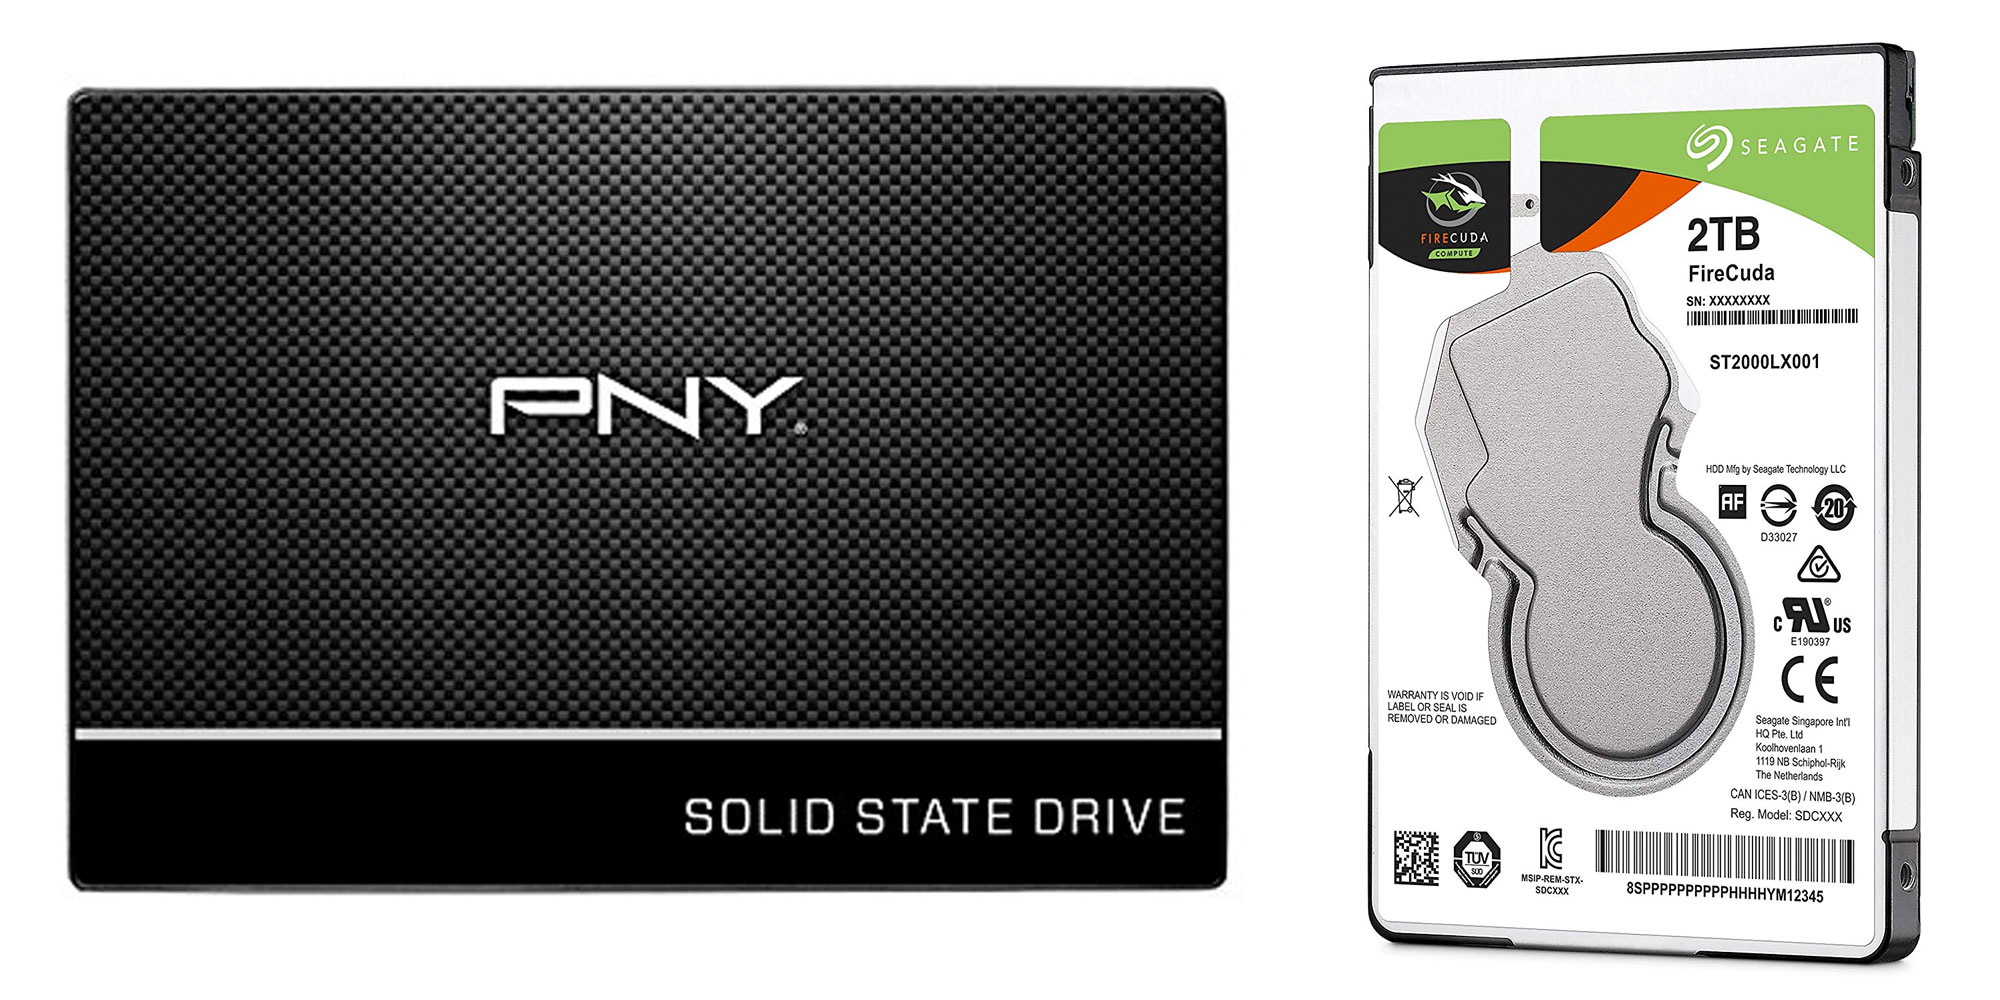 Upgrade Your Mac Or Pc With This 960gb Ssd For 145 Reg